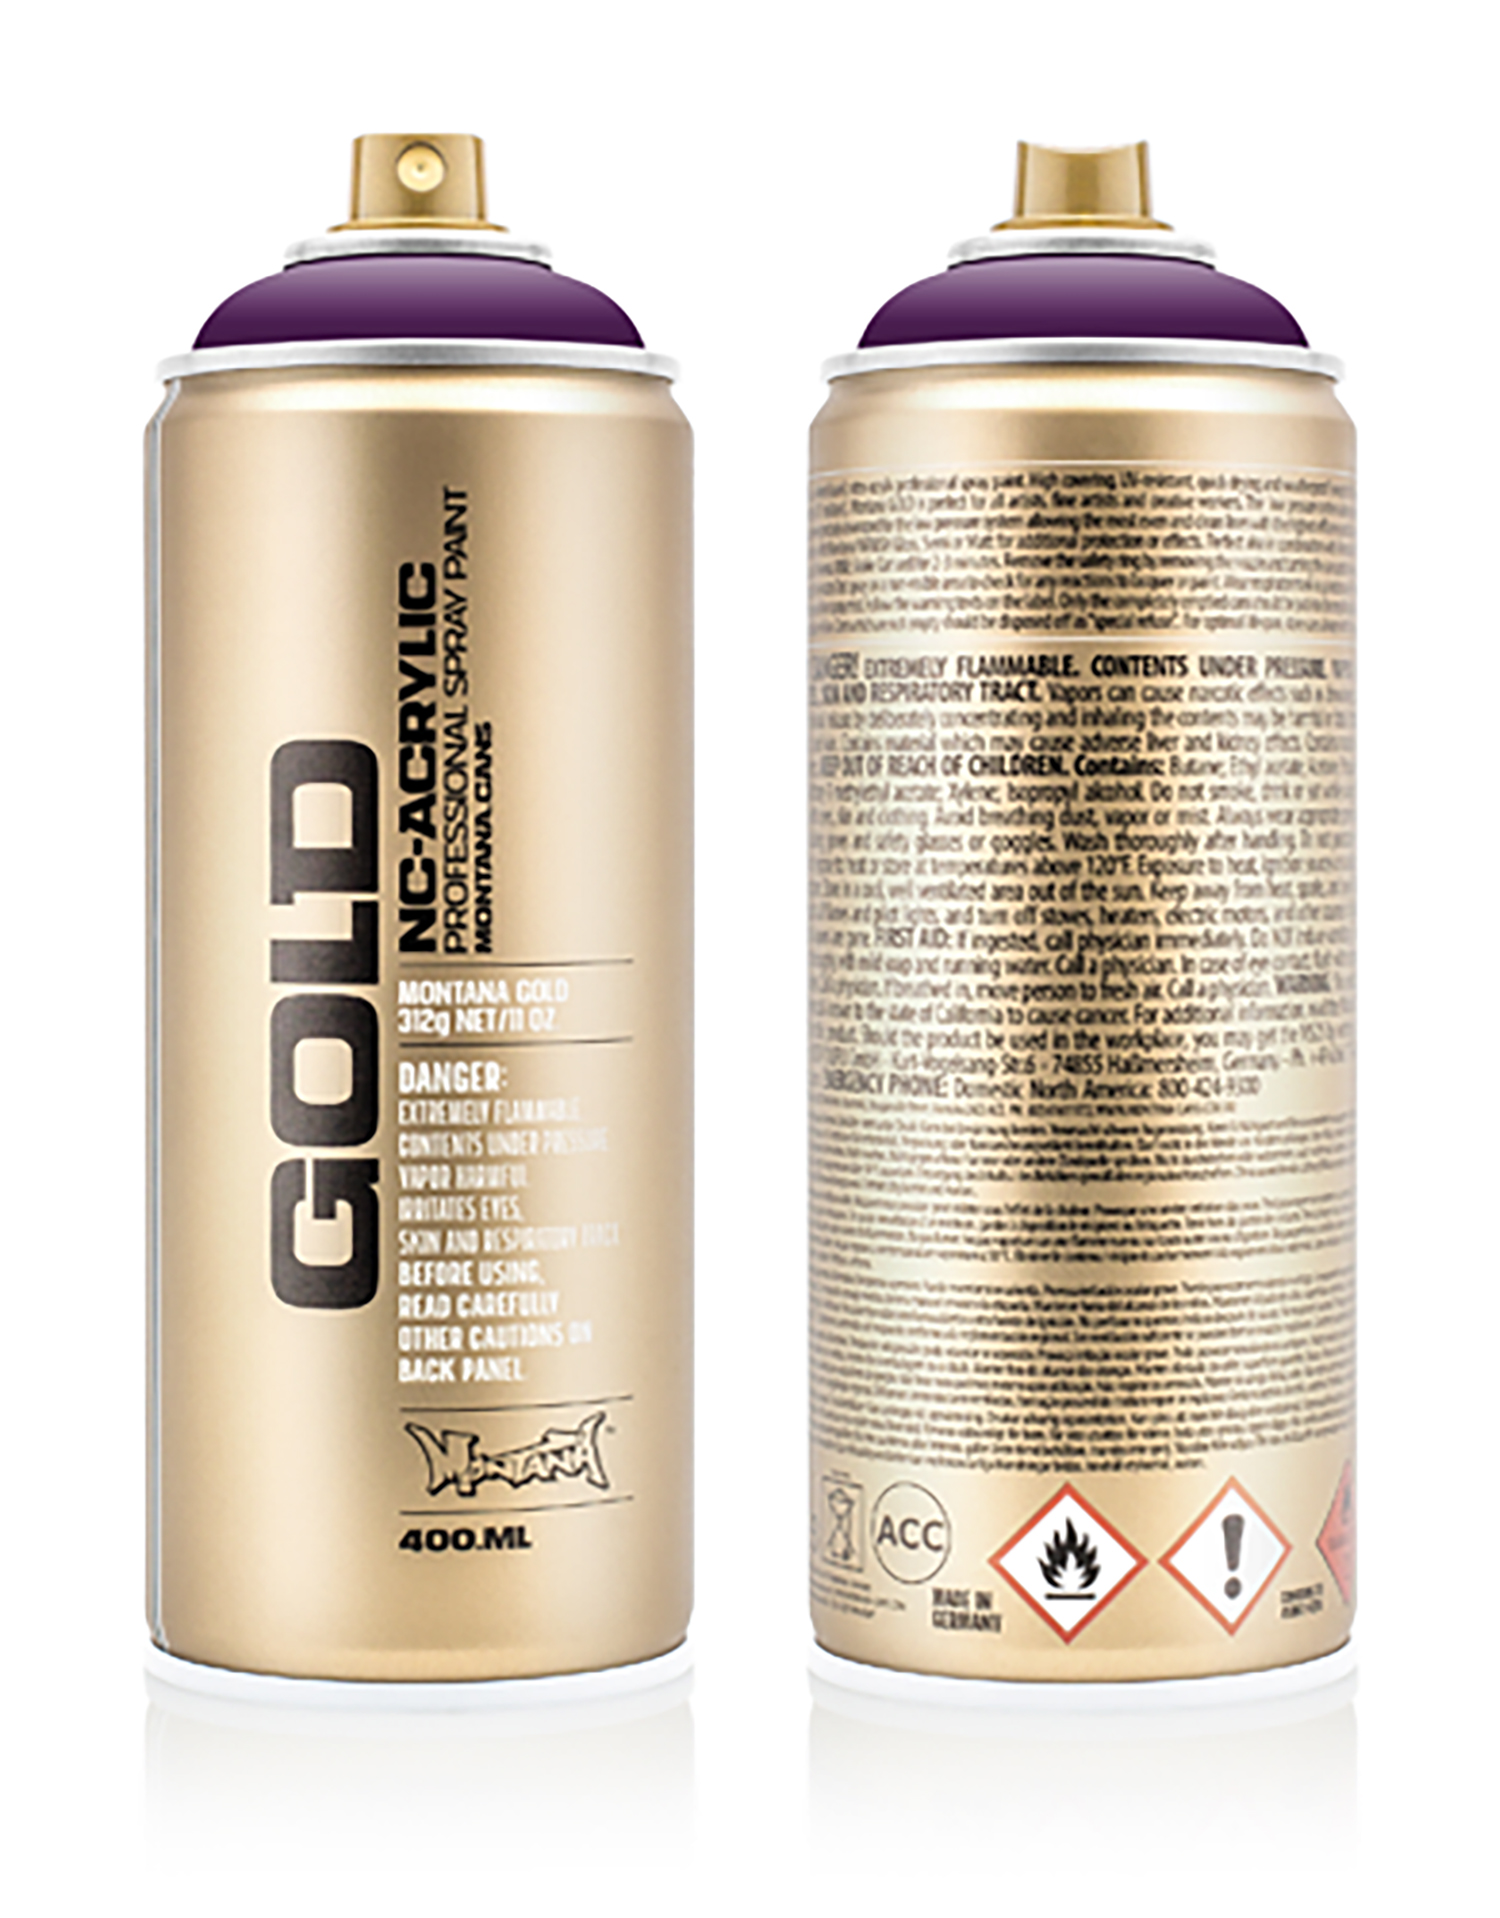 MONTANA-GOLD-SPRAY-400ML-G-4240